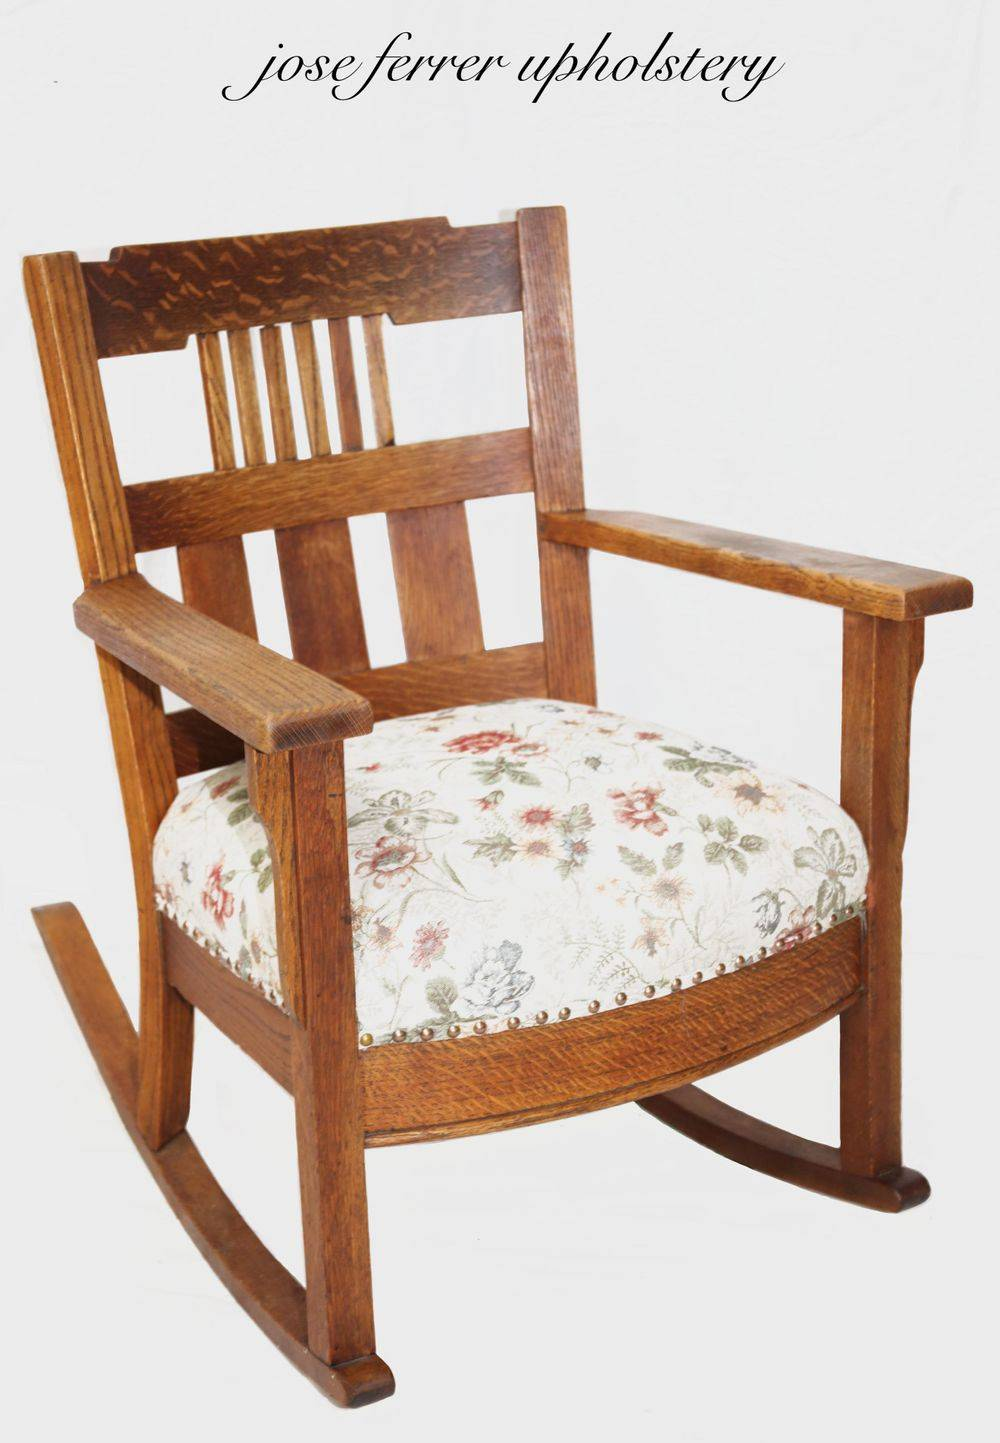 rocking chair with pullover seat in floral print pattern